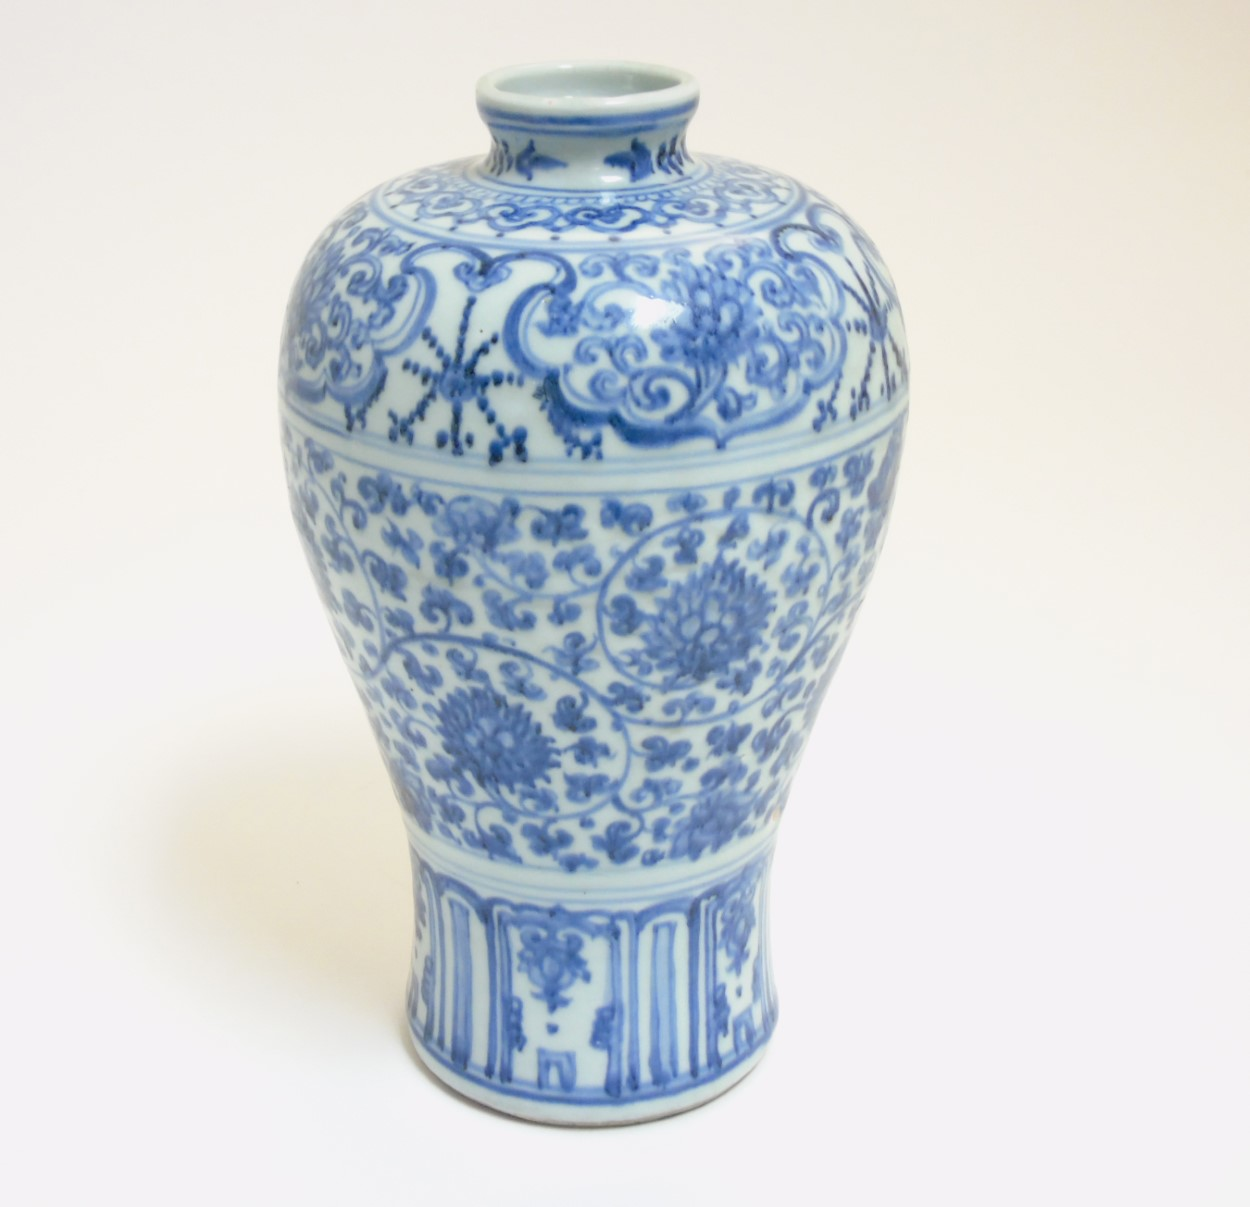 Lot 22 - A Chinese blue and white Meiping vase, with underglaze blue decoration of scrolling lotus,